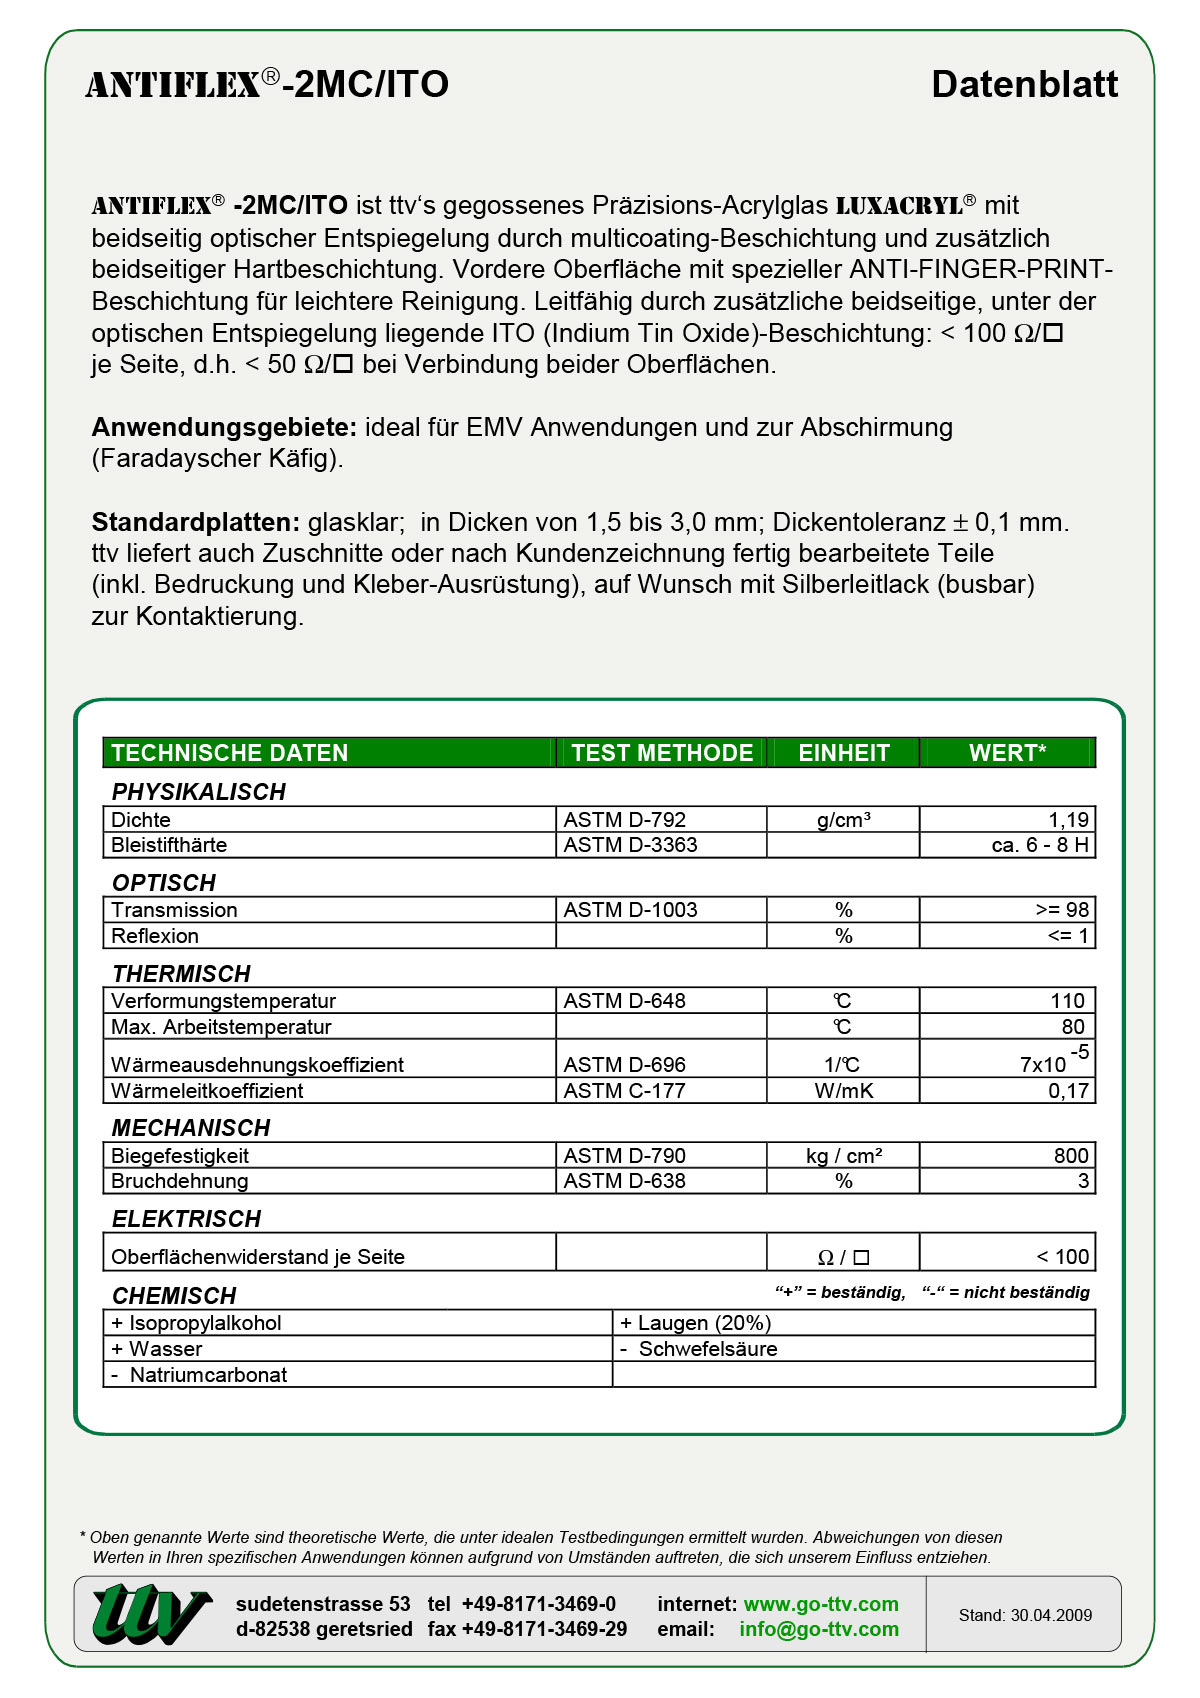 Antiflex-2MC/ITO Datenblatt